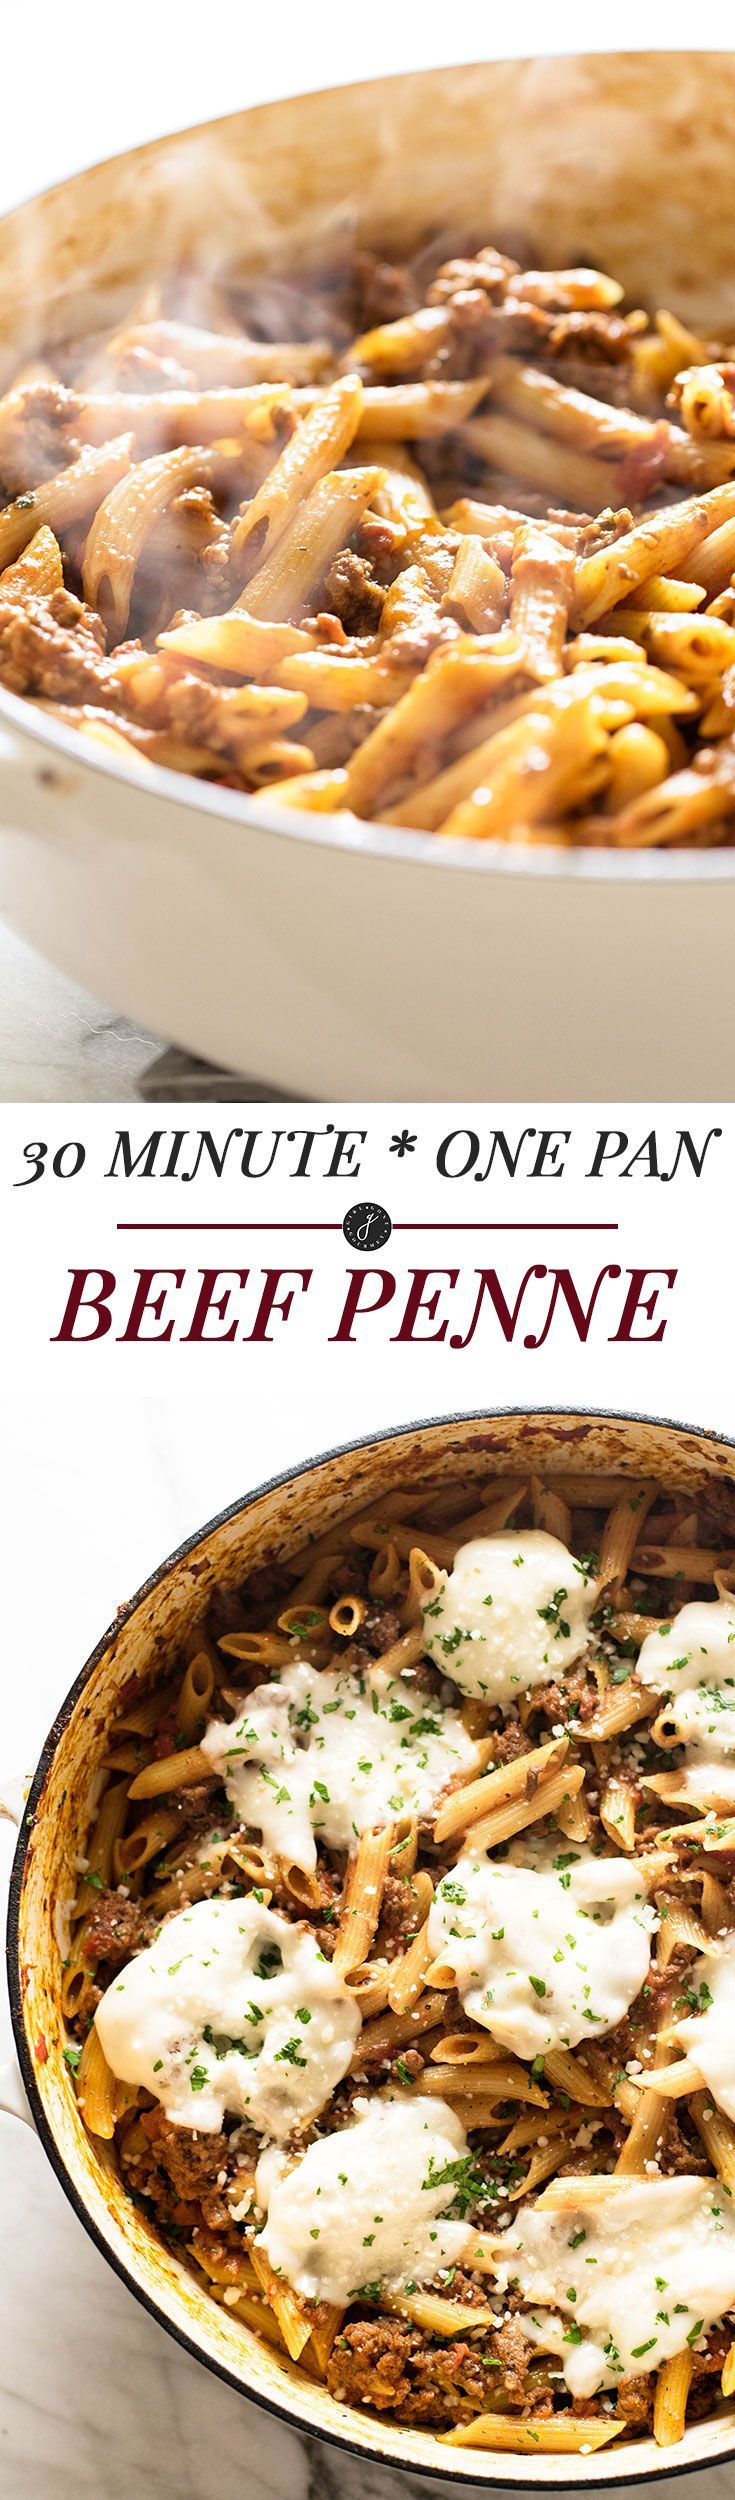 A quick and easy dinner! 30 Minute One Pan Beef Penne | girlgonegourmet.com